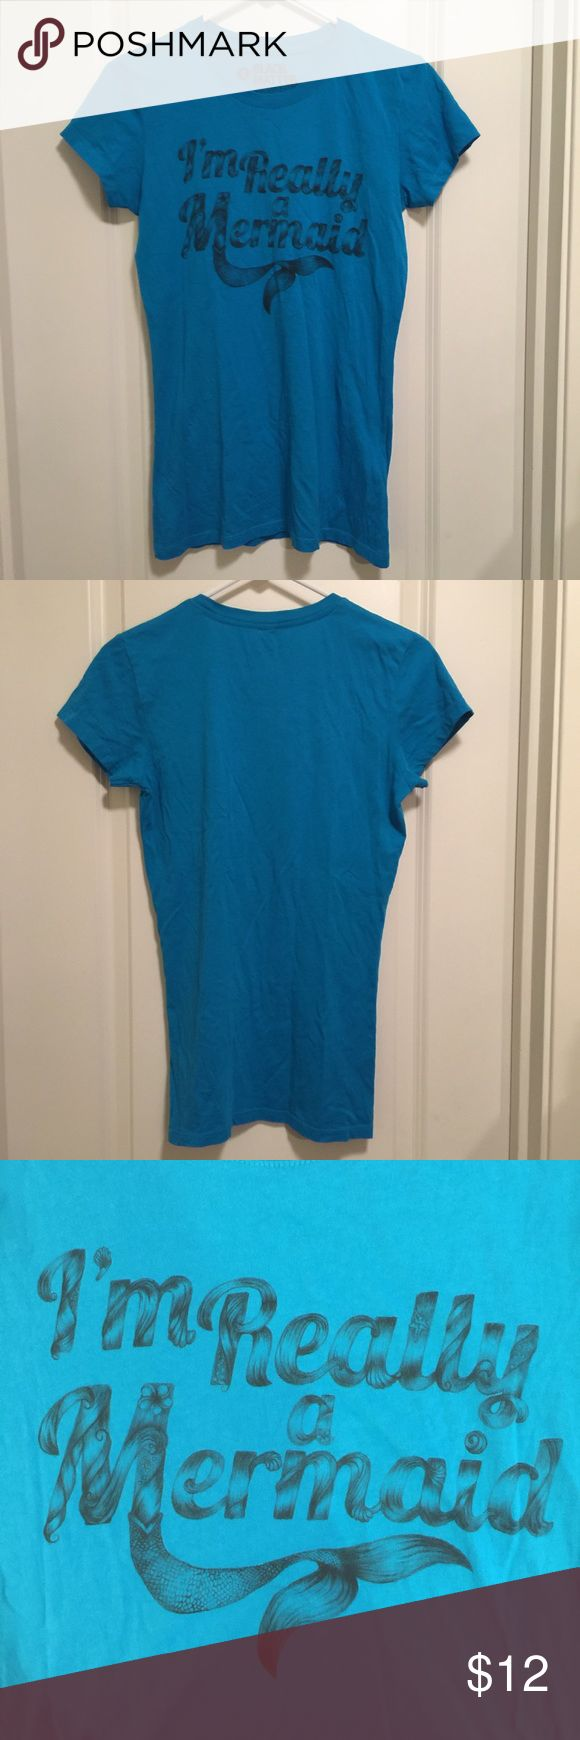 I'm Really A Mermaid Tee Perfect For Halloween I'm Really a Mermaid, blue t-shirt. Black Matter brand, juniors size large. Good used condition, only hand washed and never put in dryer. Super cute shirt for Halloween or anyone that loves mermaids. Super pretty color on. Smoke/pet free home. Open to offers! Bundle and save! Black Milk tagged for exposure. Blackmilk Tops Tees - Short Sleeve